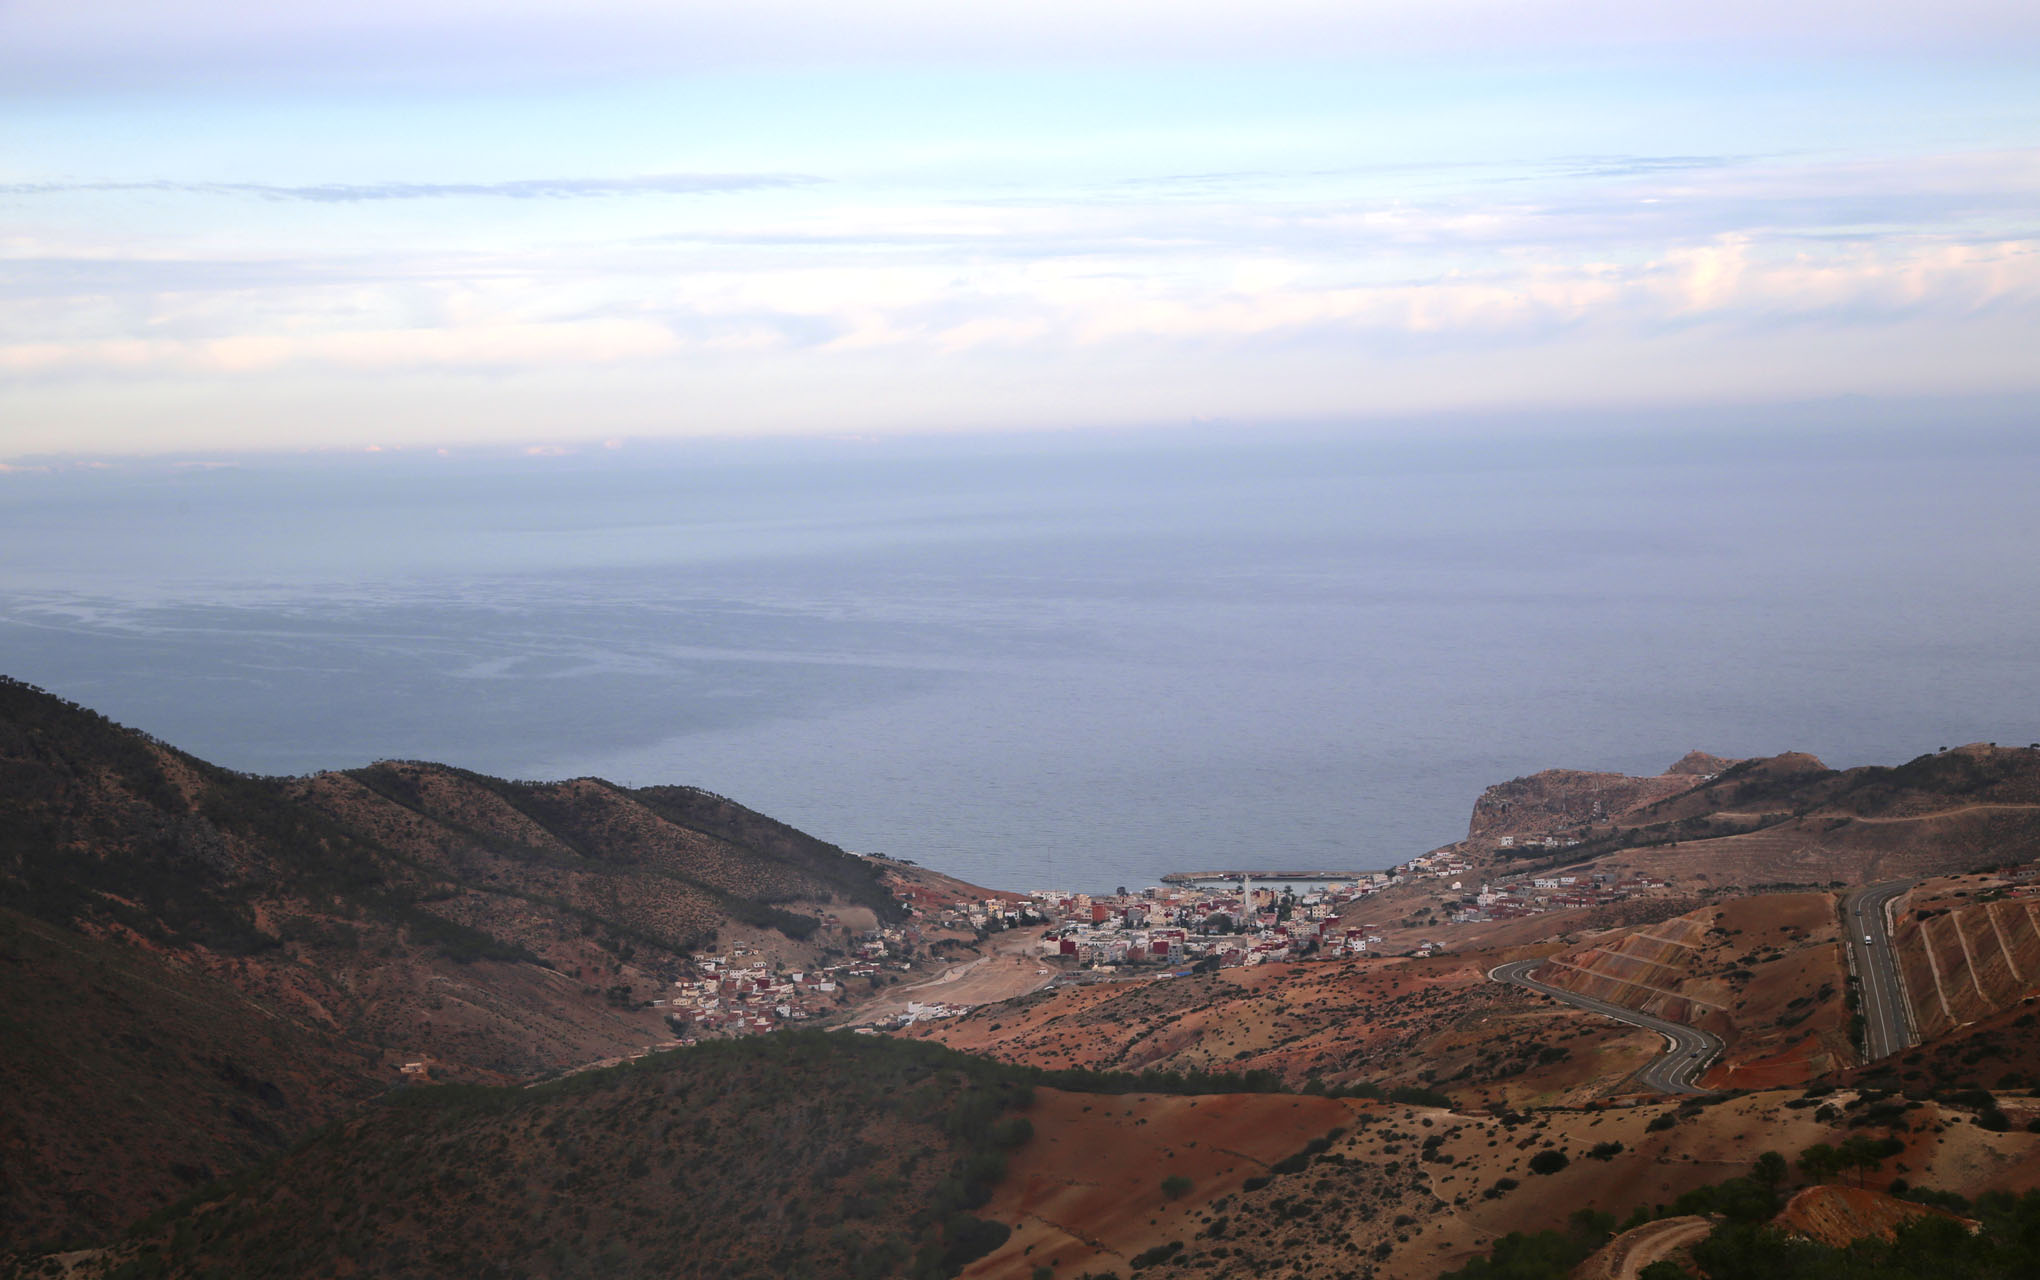 Rif Coast from Tetuan to Jeba - 22       6:47    04-24